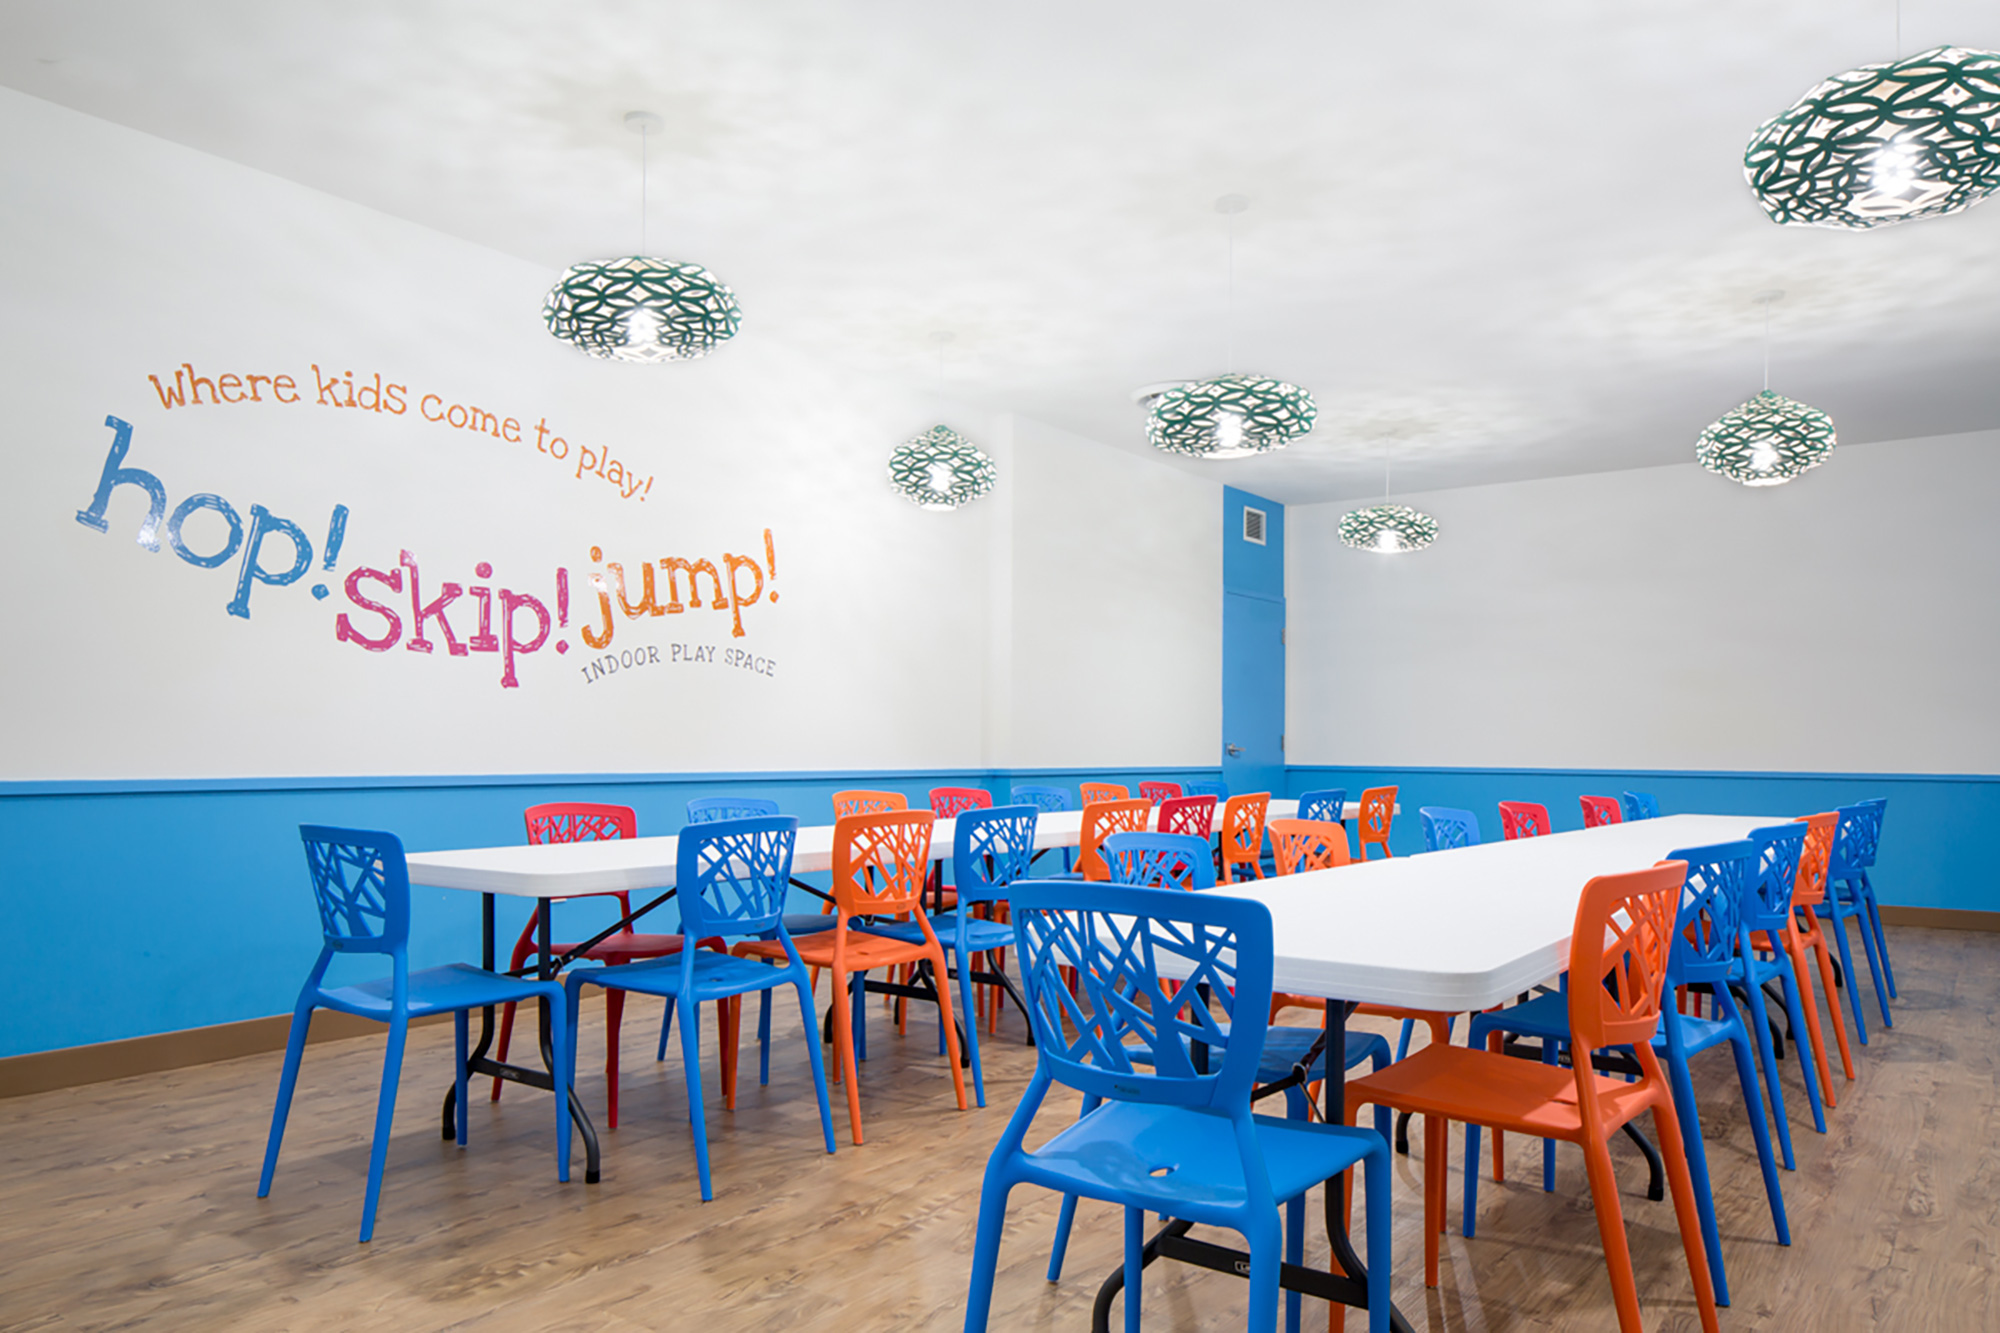 interior-design-indoor-play-facility-blue-chairs.jpg